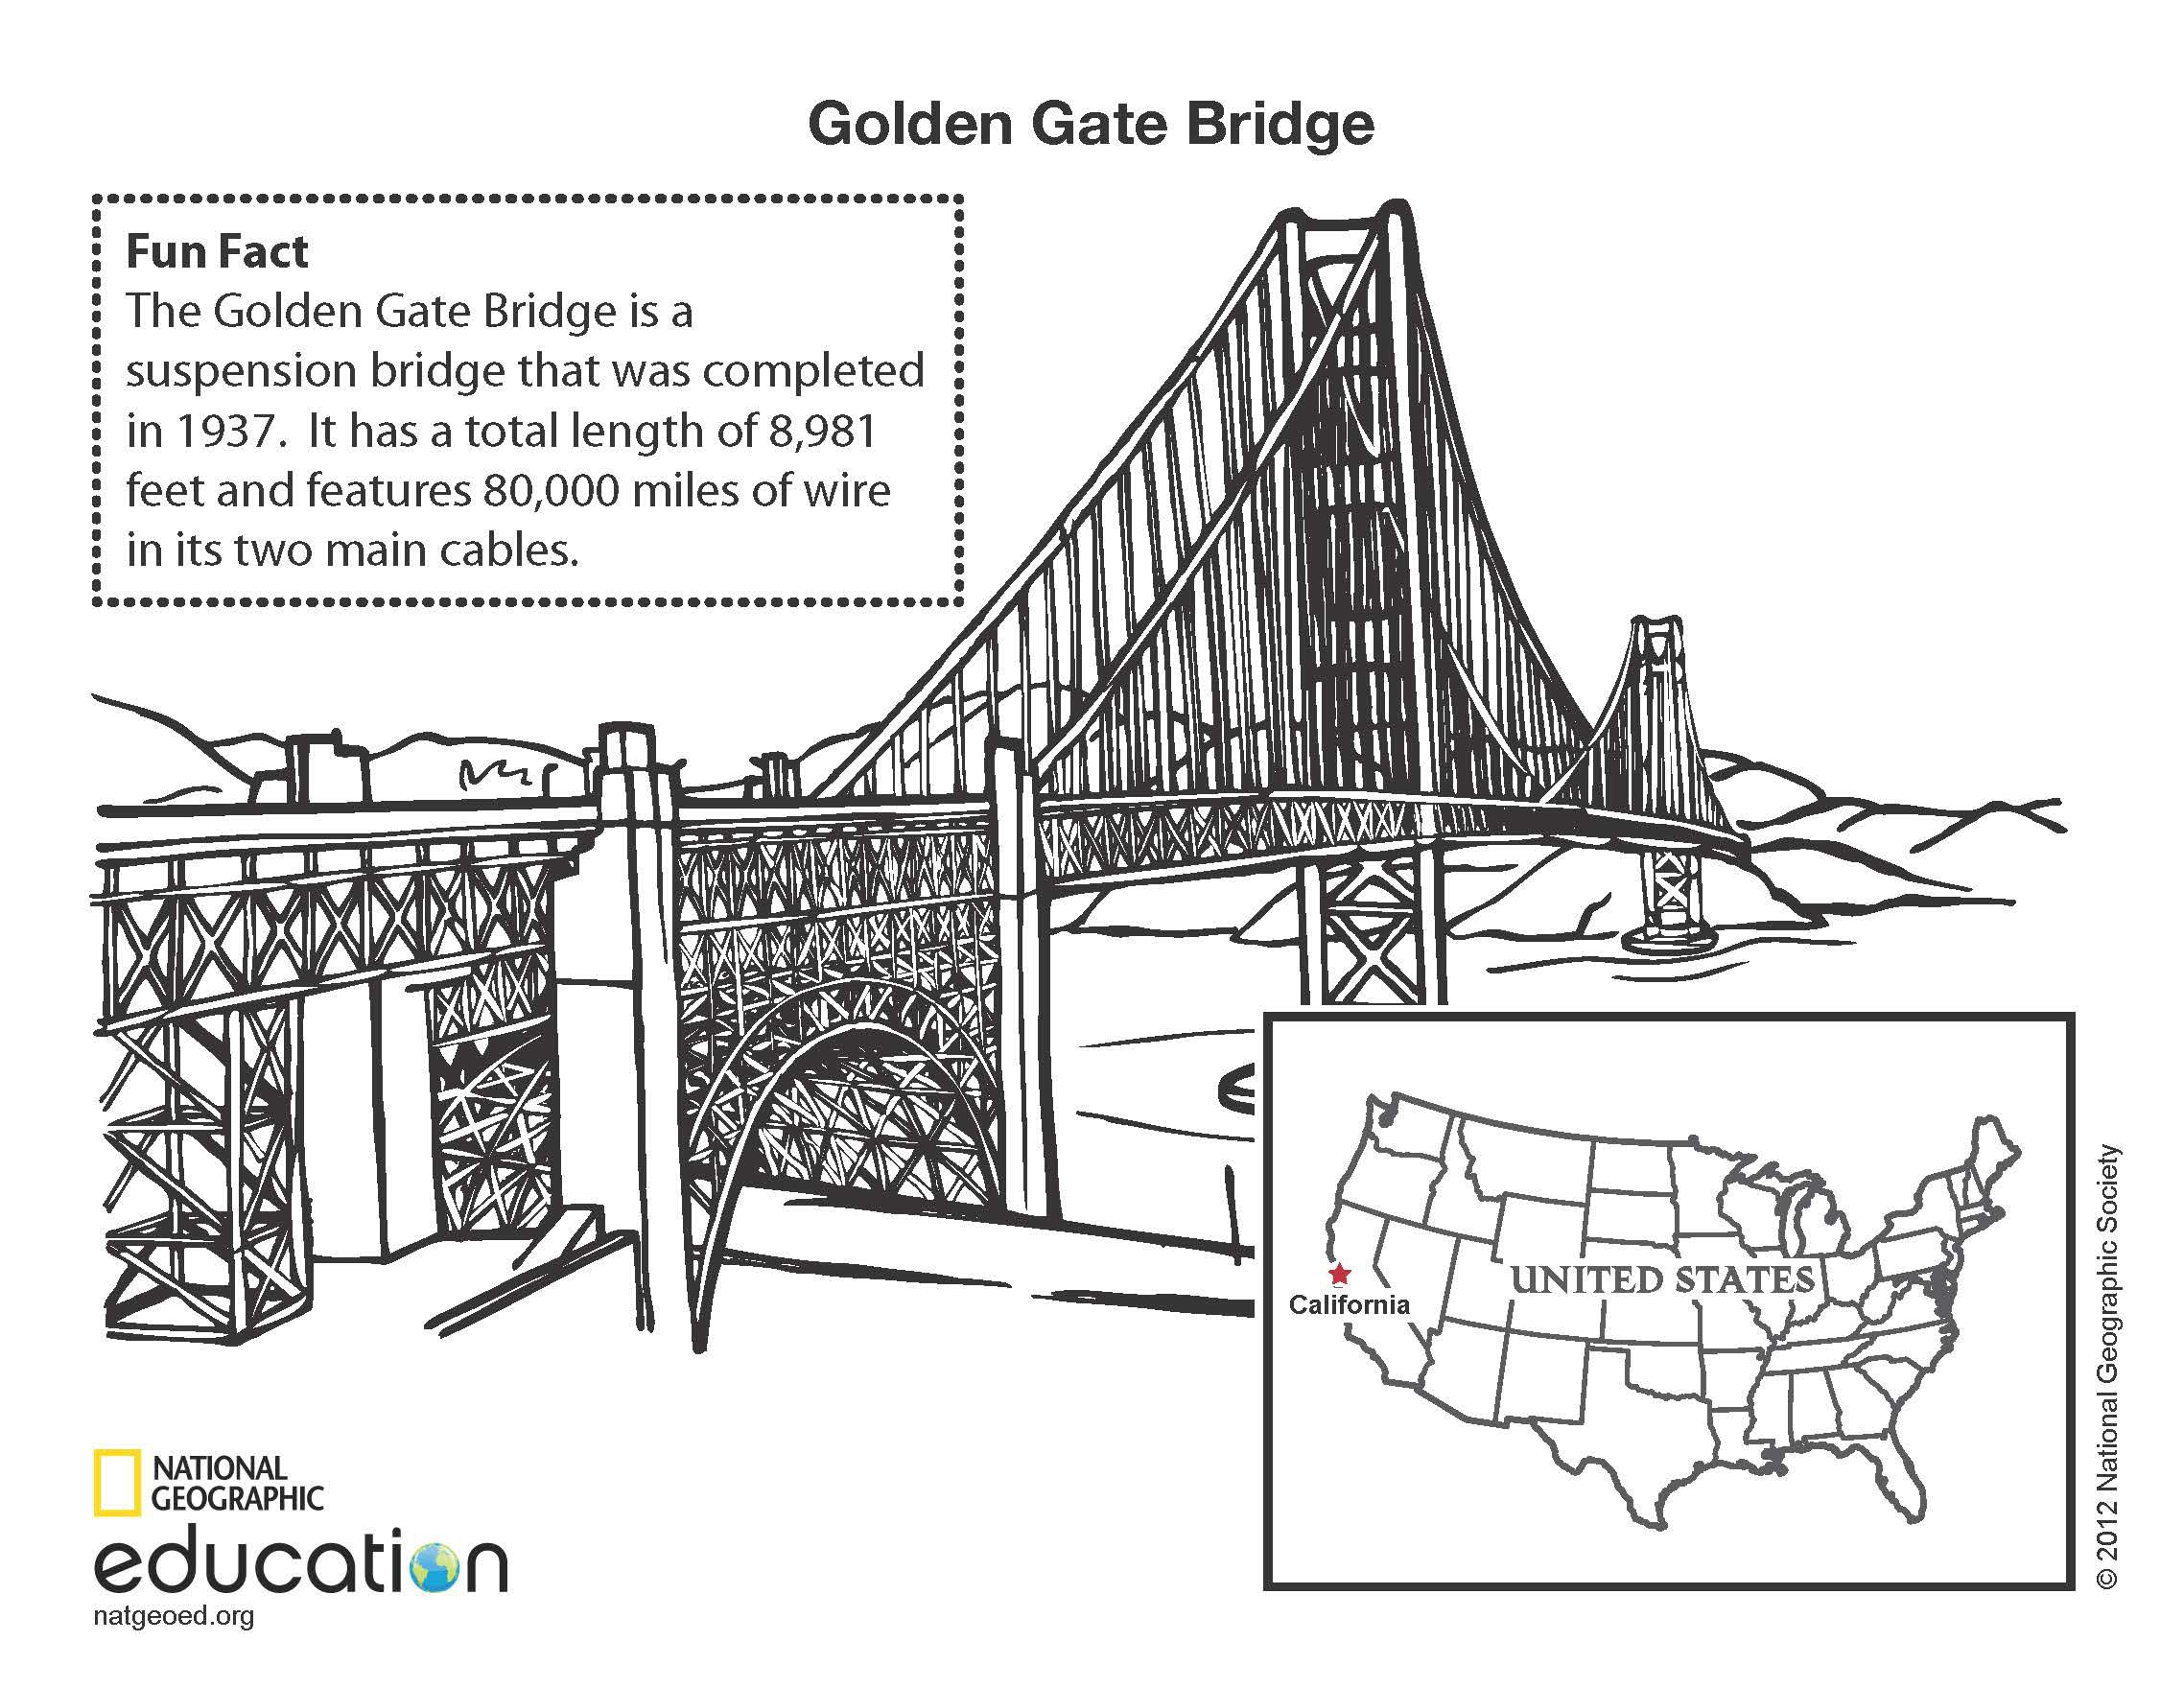 Printable coloring pages golden gate bridge - Golden Gate Bridge Illustration By Mary Crooks Download This File